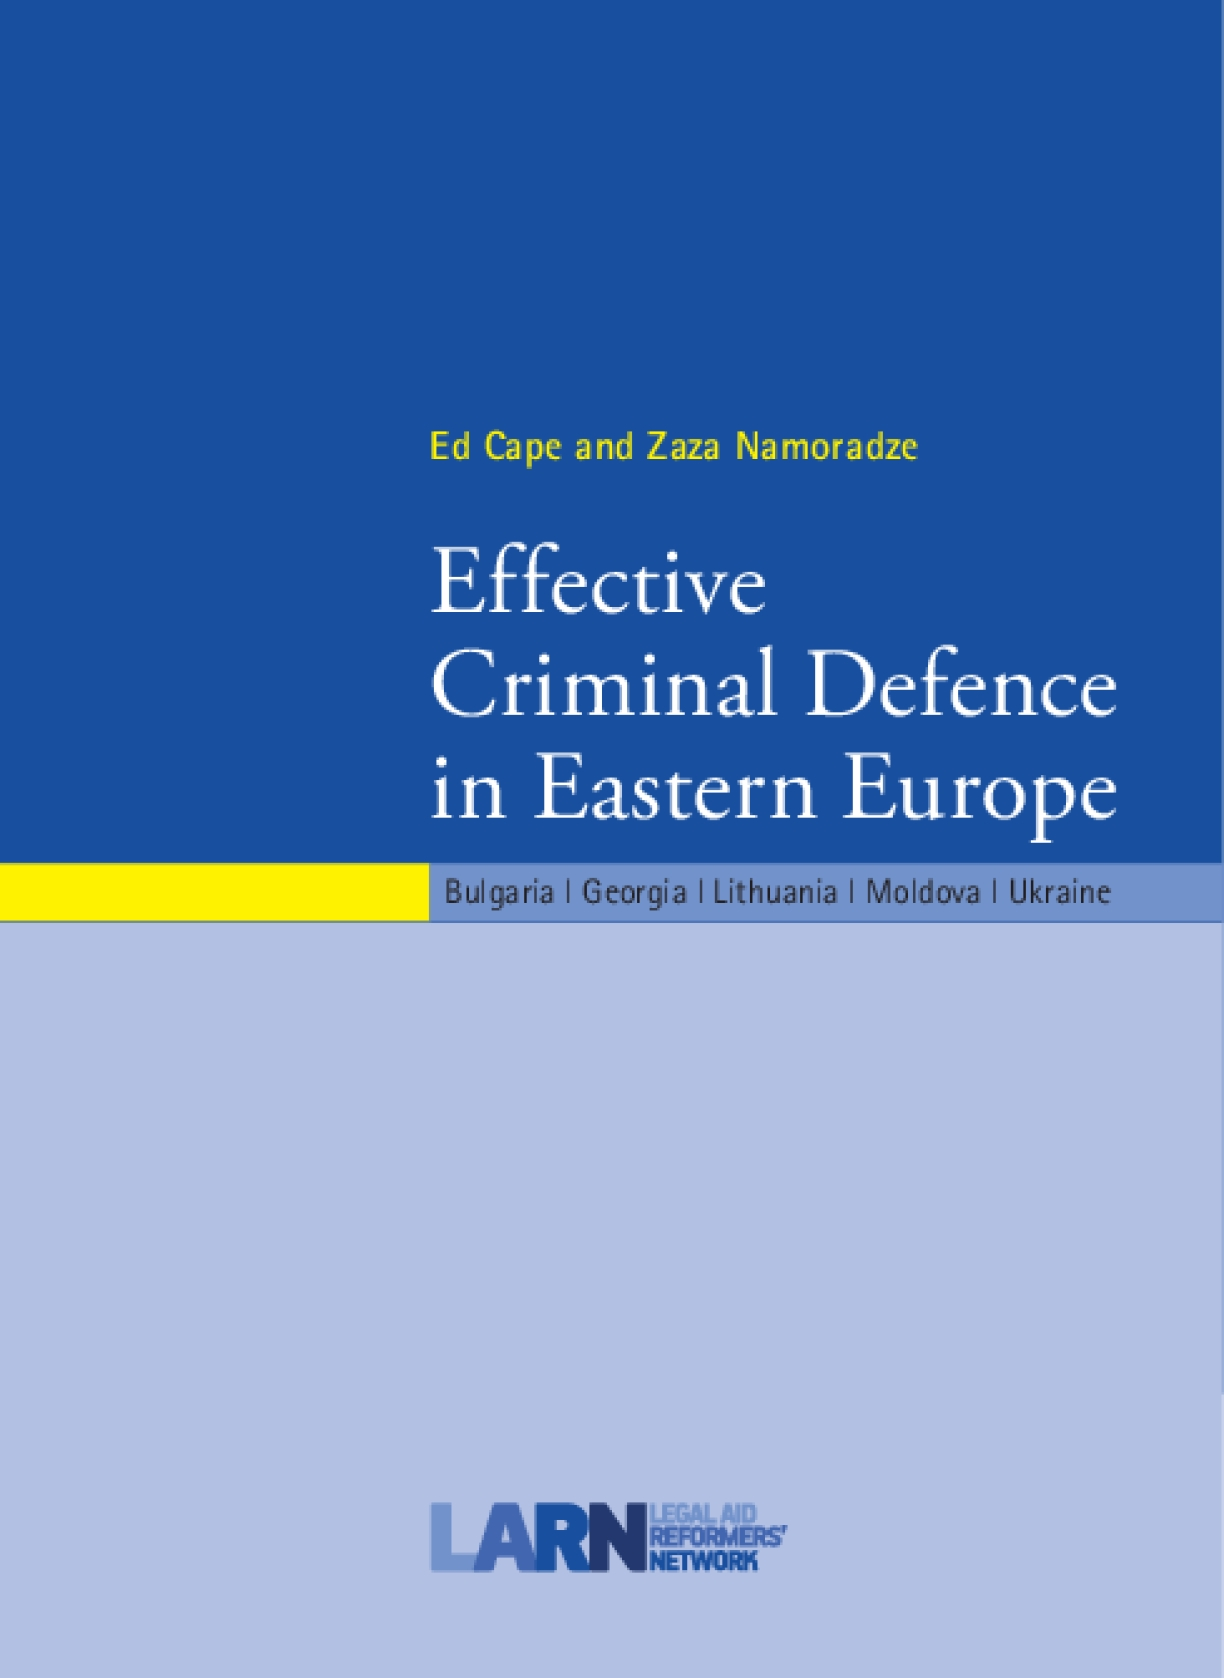 Effective Criminal Defence in Eastern Europe